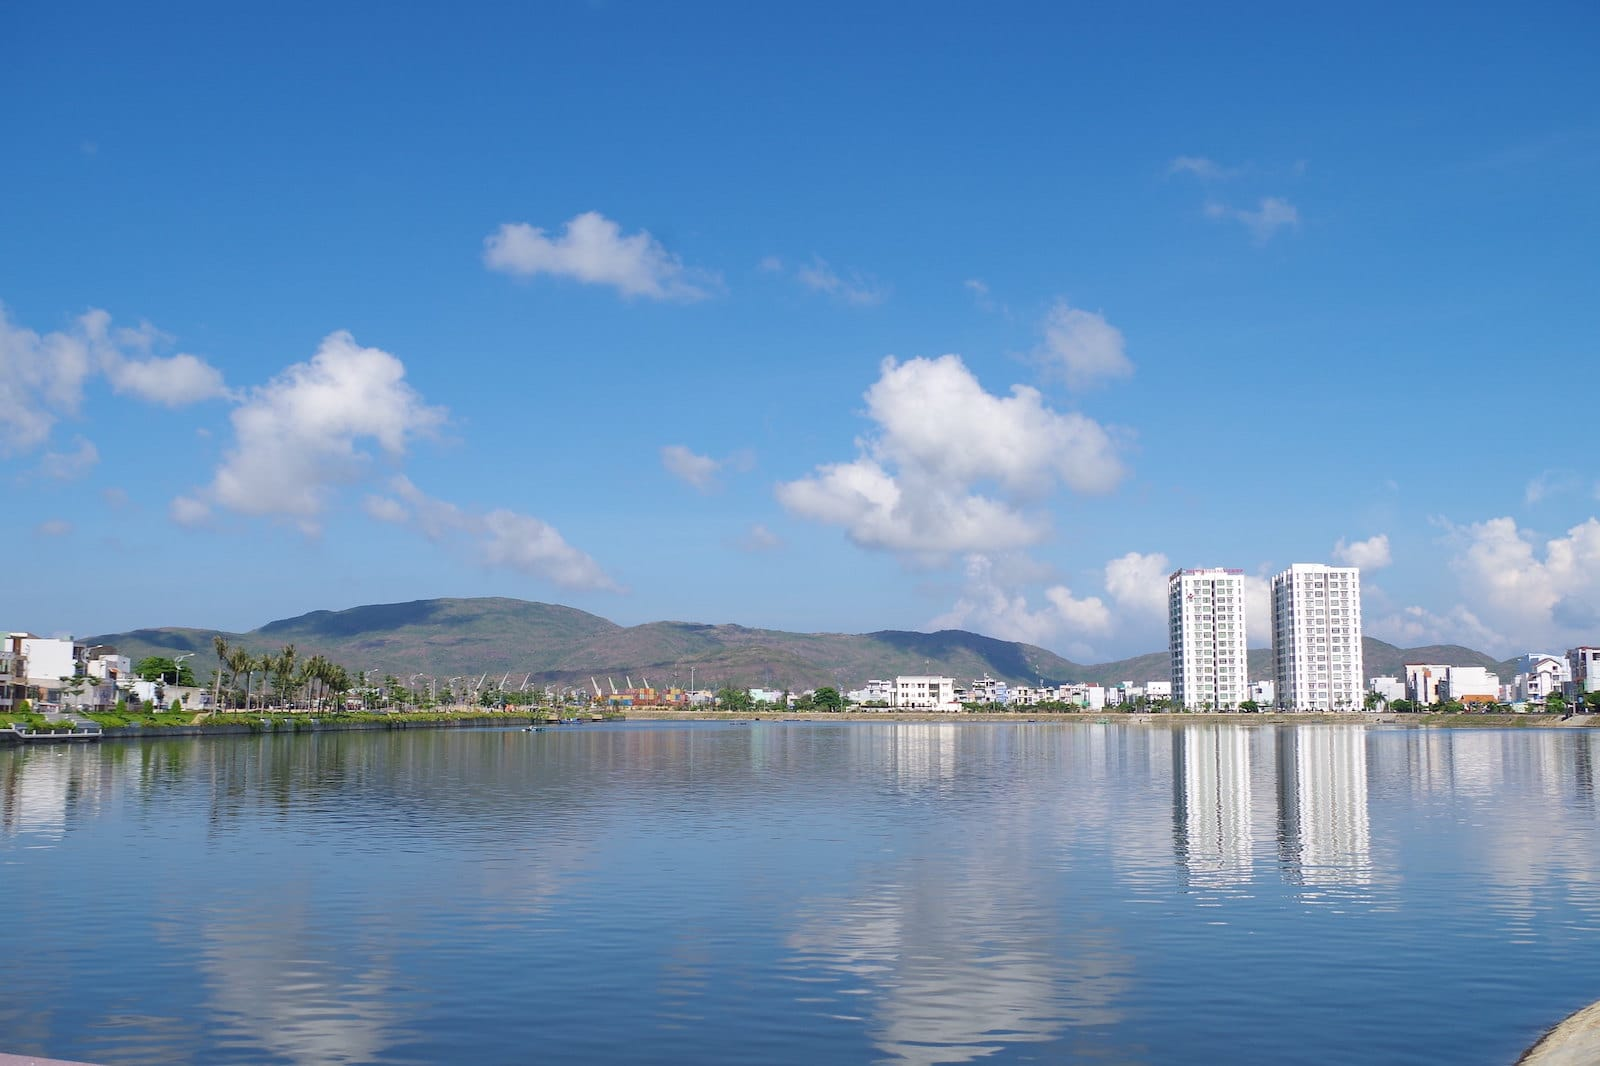 Image of Quy Nhon in Binh Dinh Province, Vietnam